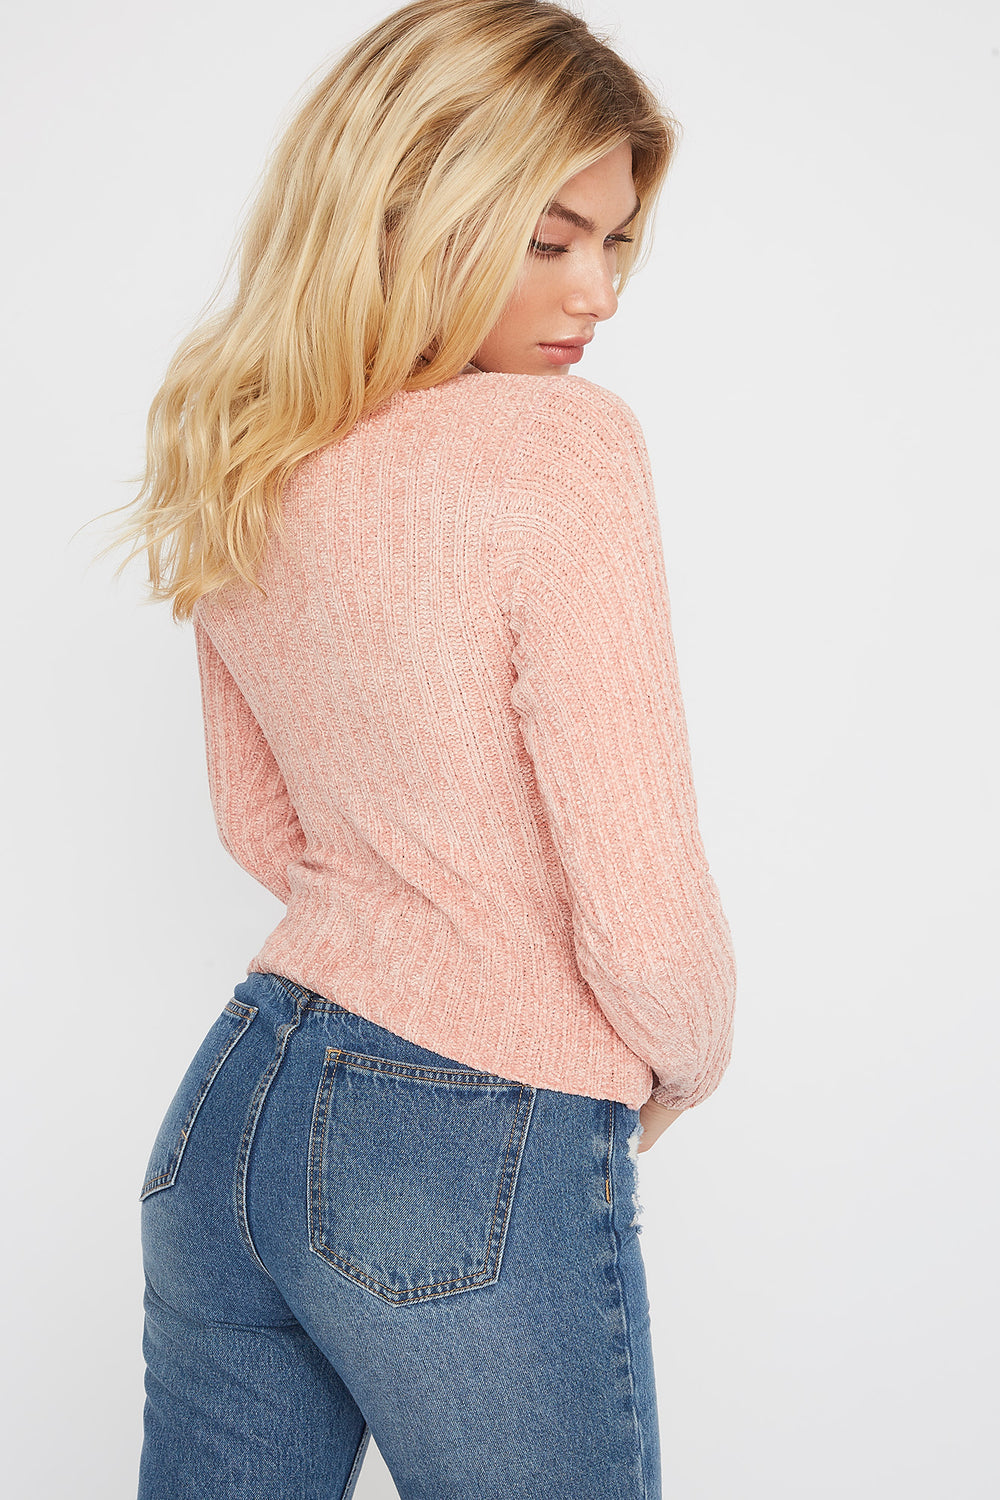 Chenille Button-Up Cardigan Sweater Pink